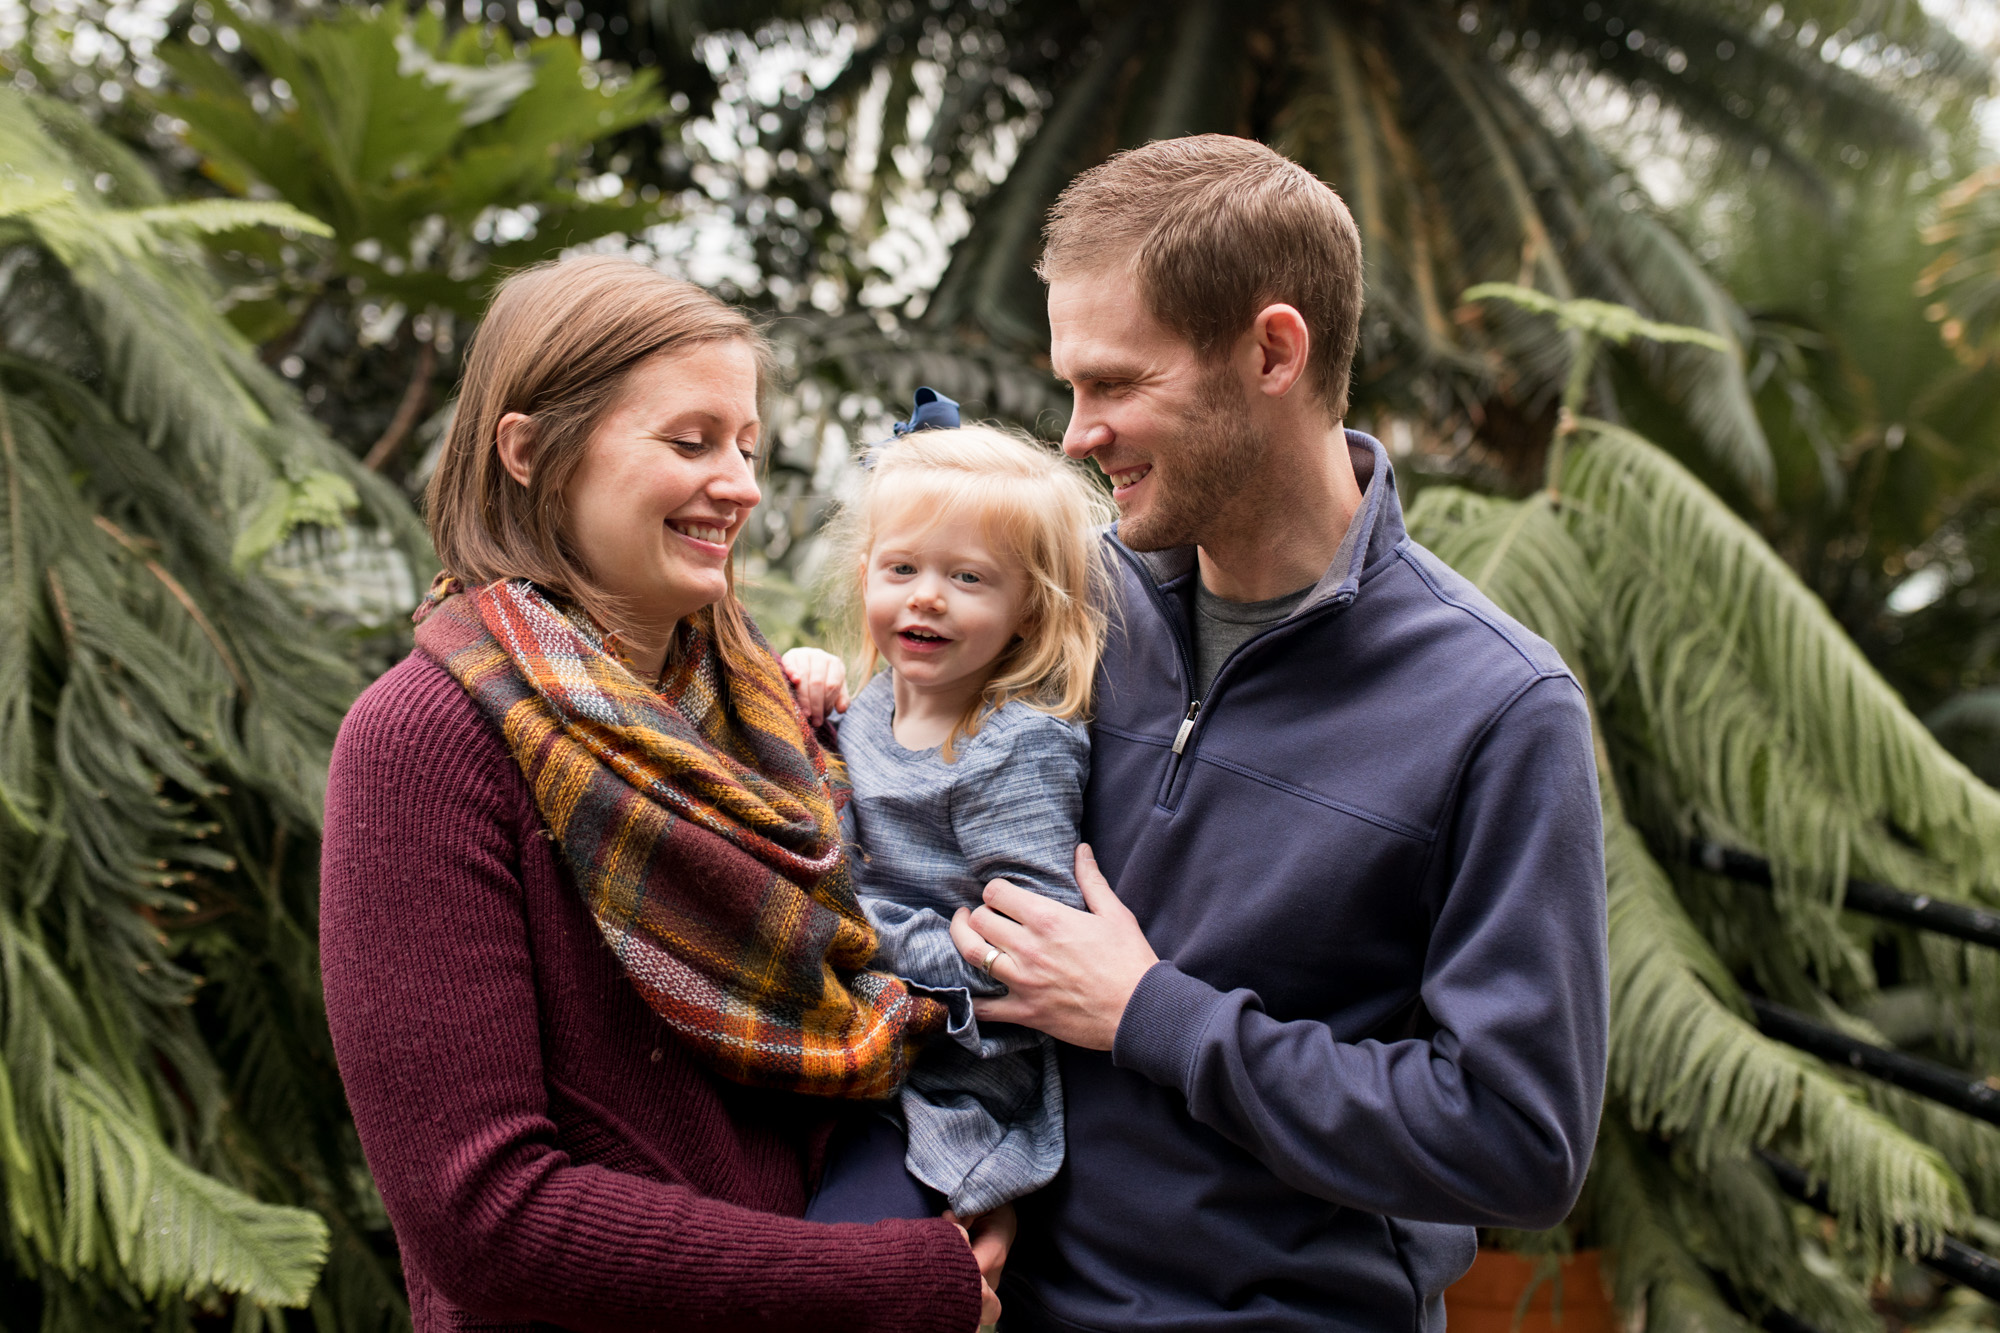 Foellinger-Freimann Botanical Conservatory family session in Fort Wayne Indiana